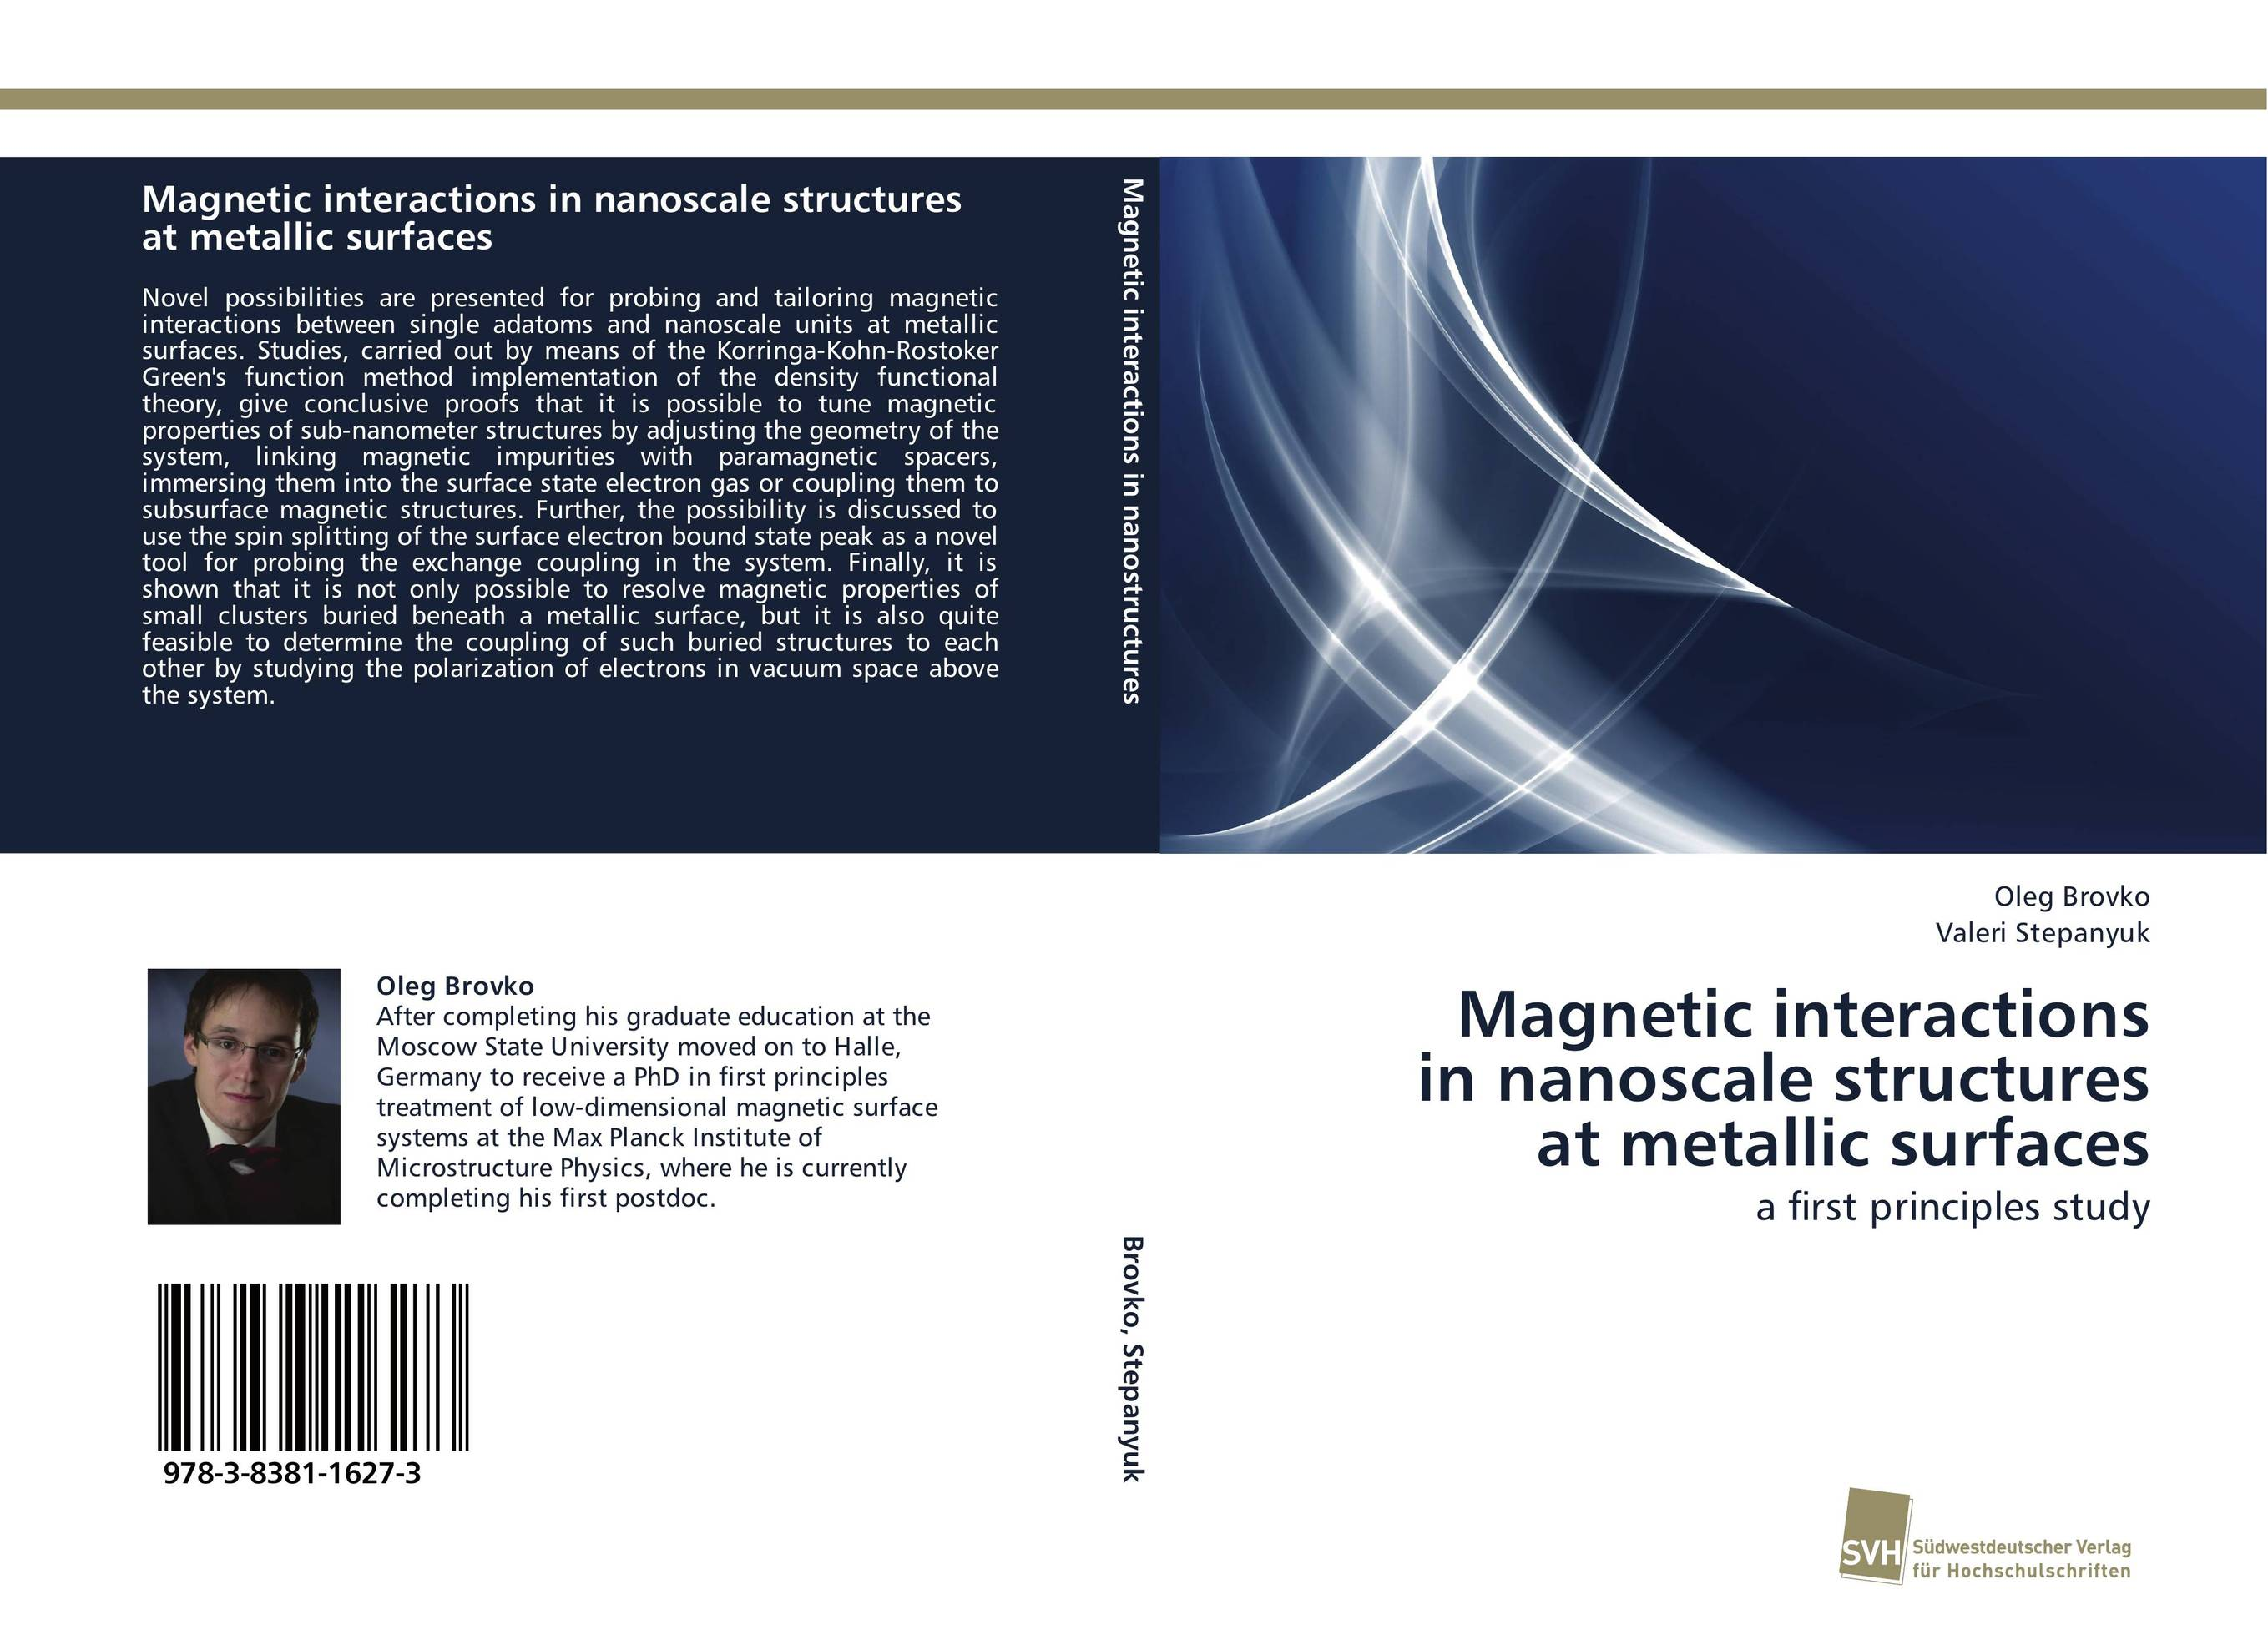 Magnetic interactions in nanoscale structures at metallic surfaces relativistic theory of electron transport in magnetic layers